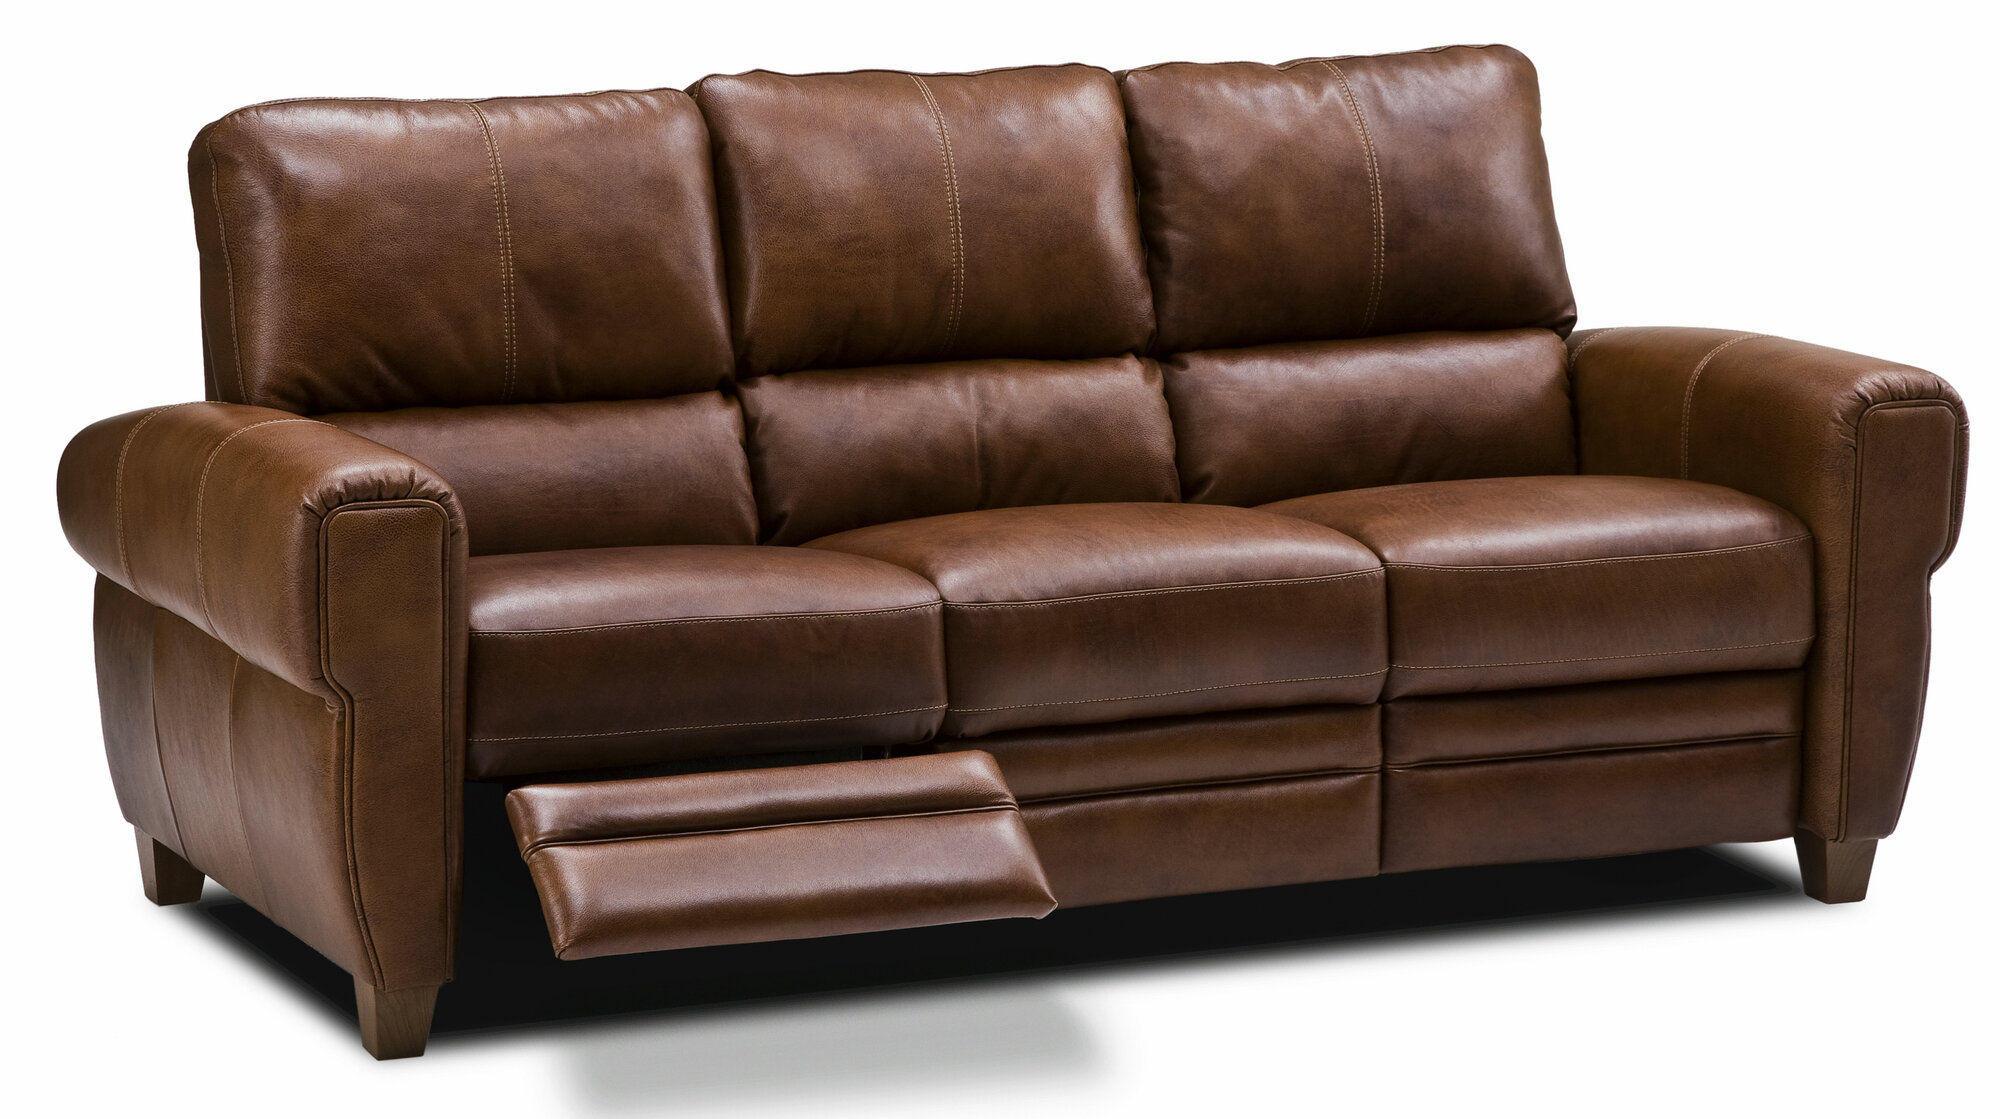 Leather sofas with recliners where is the best place to buy recliner sofa 2 seater electric Leather reclining loveseat